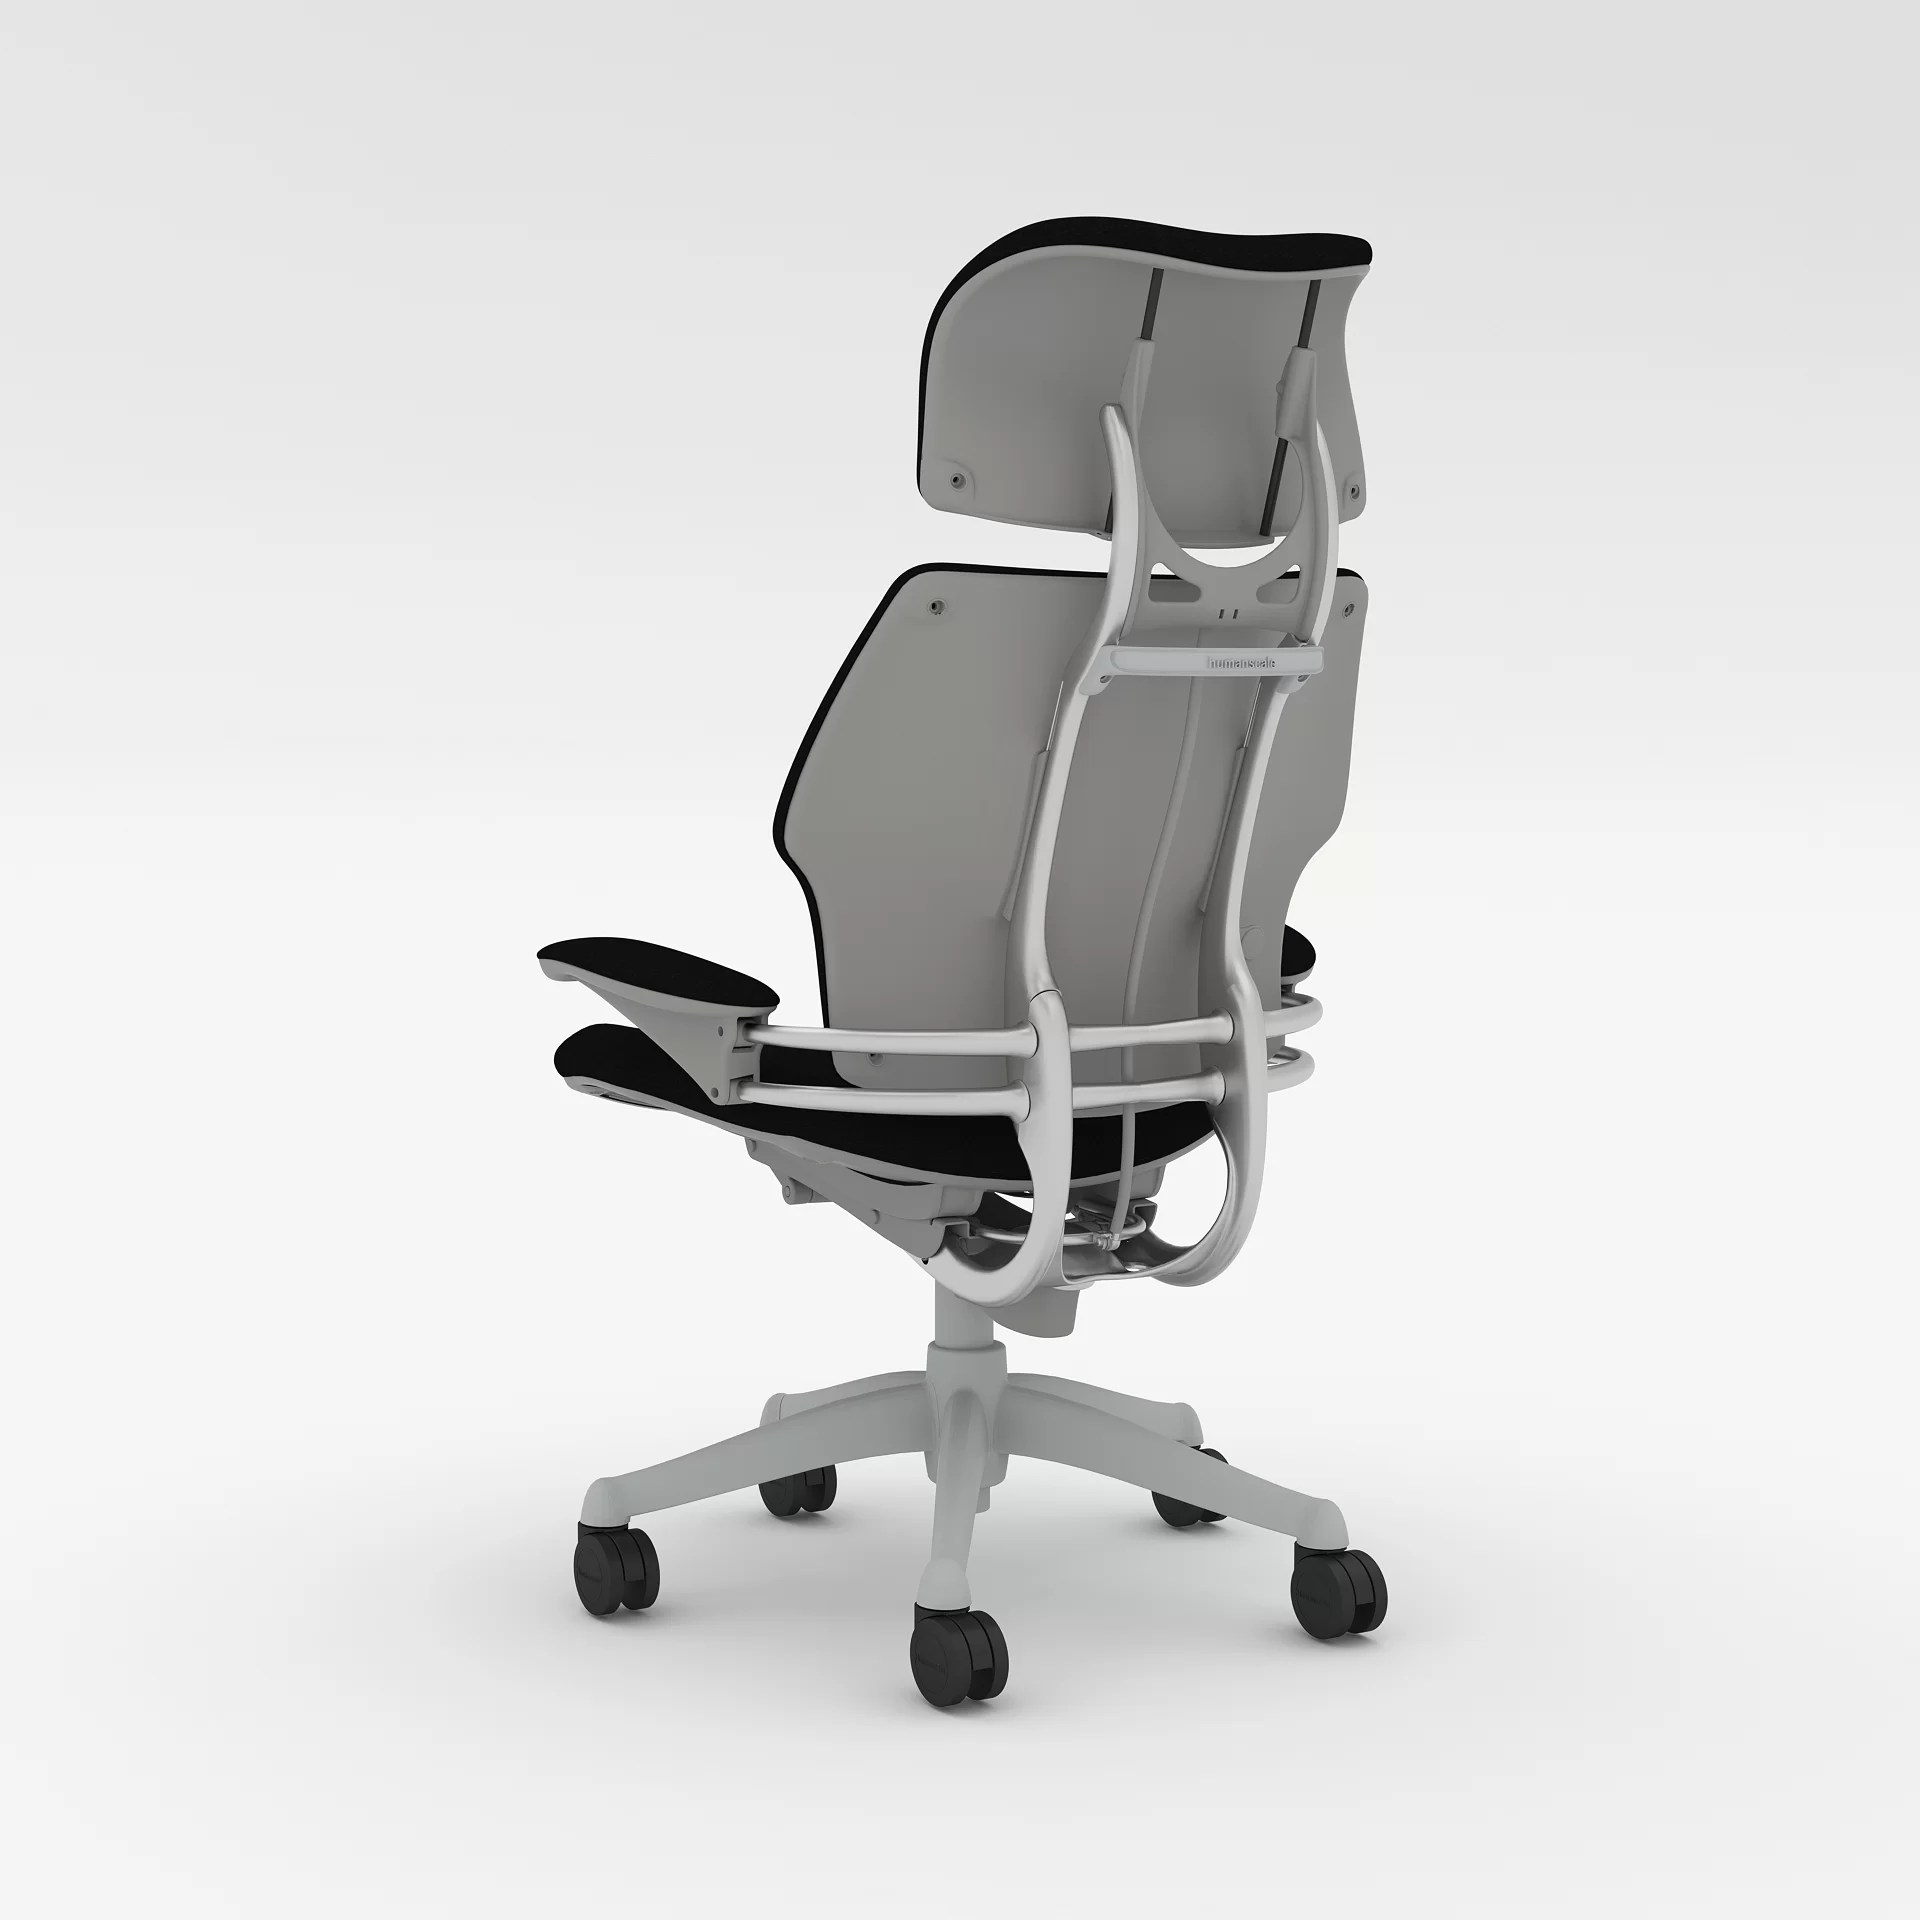 Freedom Furniture Head Office Freedom Headrest Executive Chair